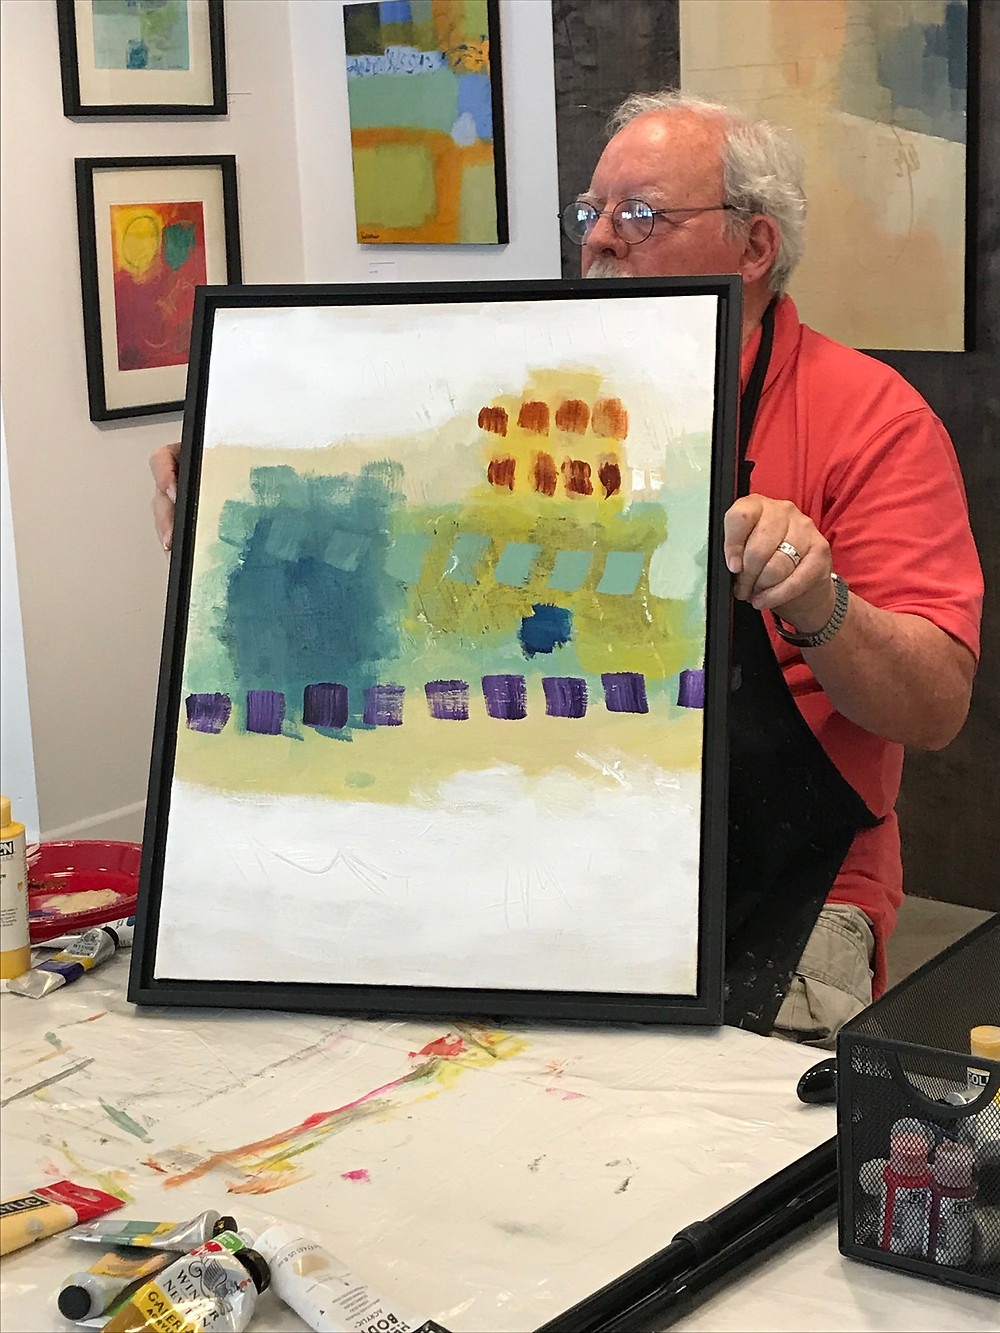 "Thanks to the hundred or so visitors to the Claremont Heritage Gallery during the month of August to view my exhibit ""Color at Play.""  I did 2 workshops on painting and viewing abstract which were a lot of fun.  Groups helped decide on color and composition.  The act of creativity is an act of resistance."